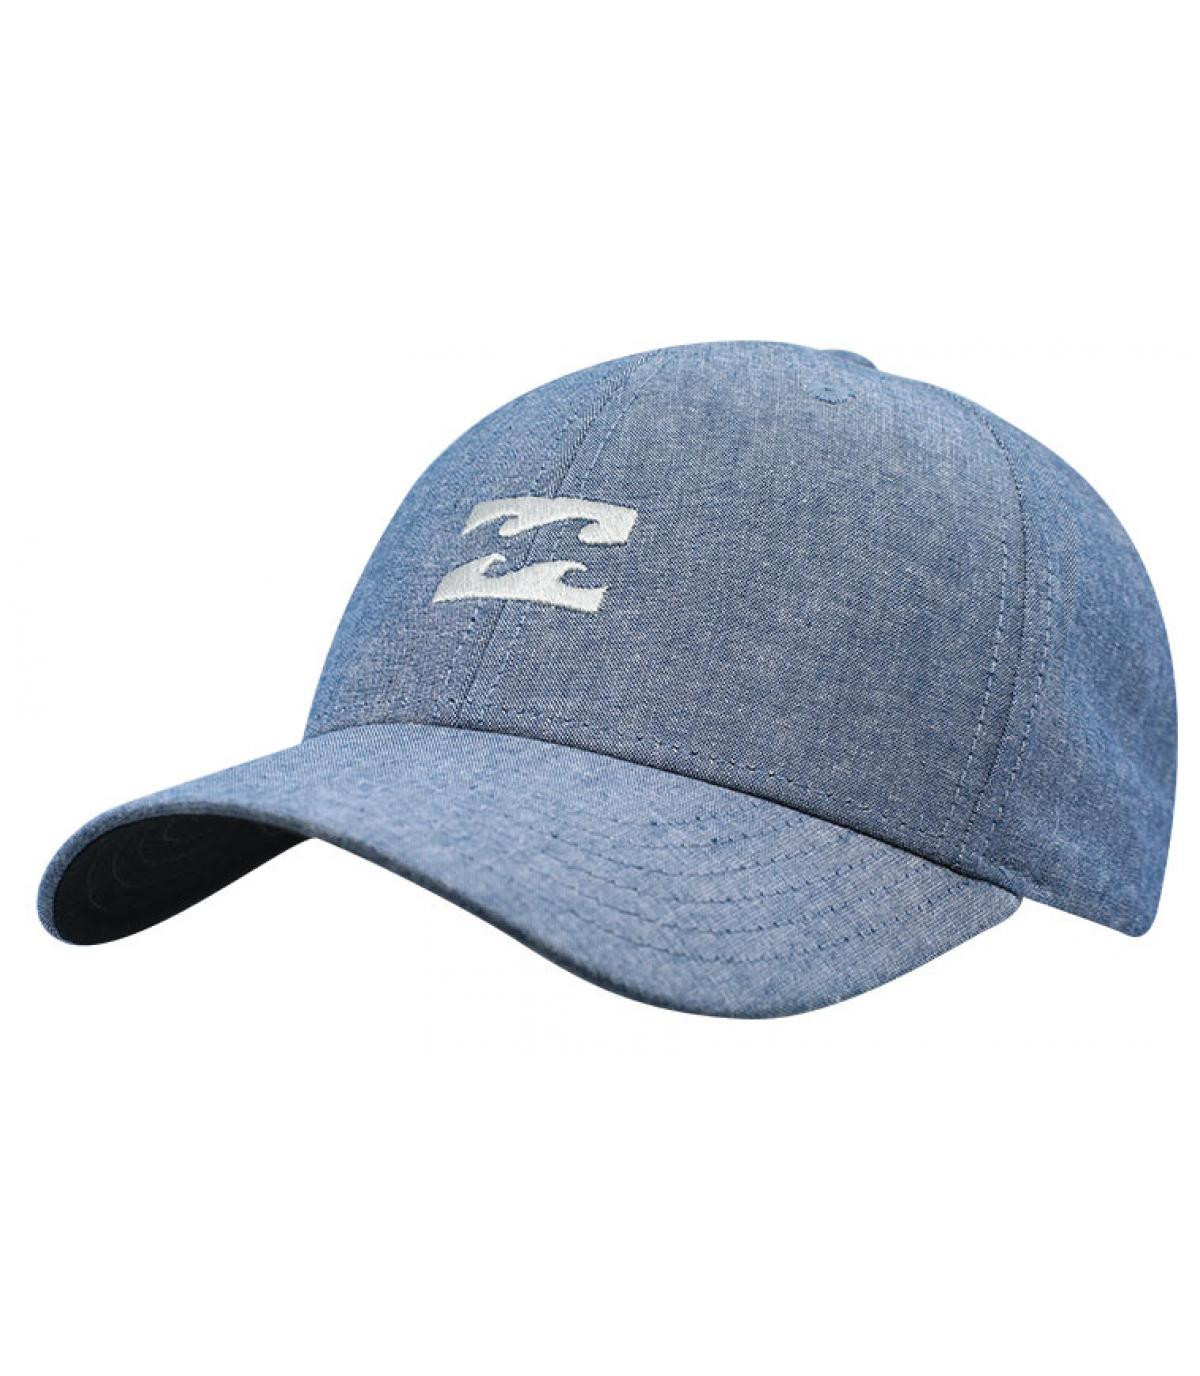 Details All Night Snapback chambray blue - afbeeling 2